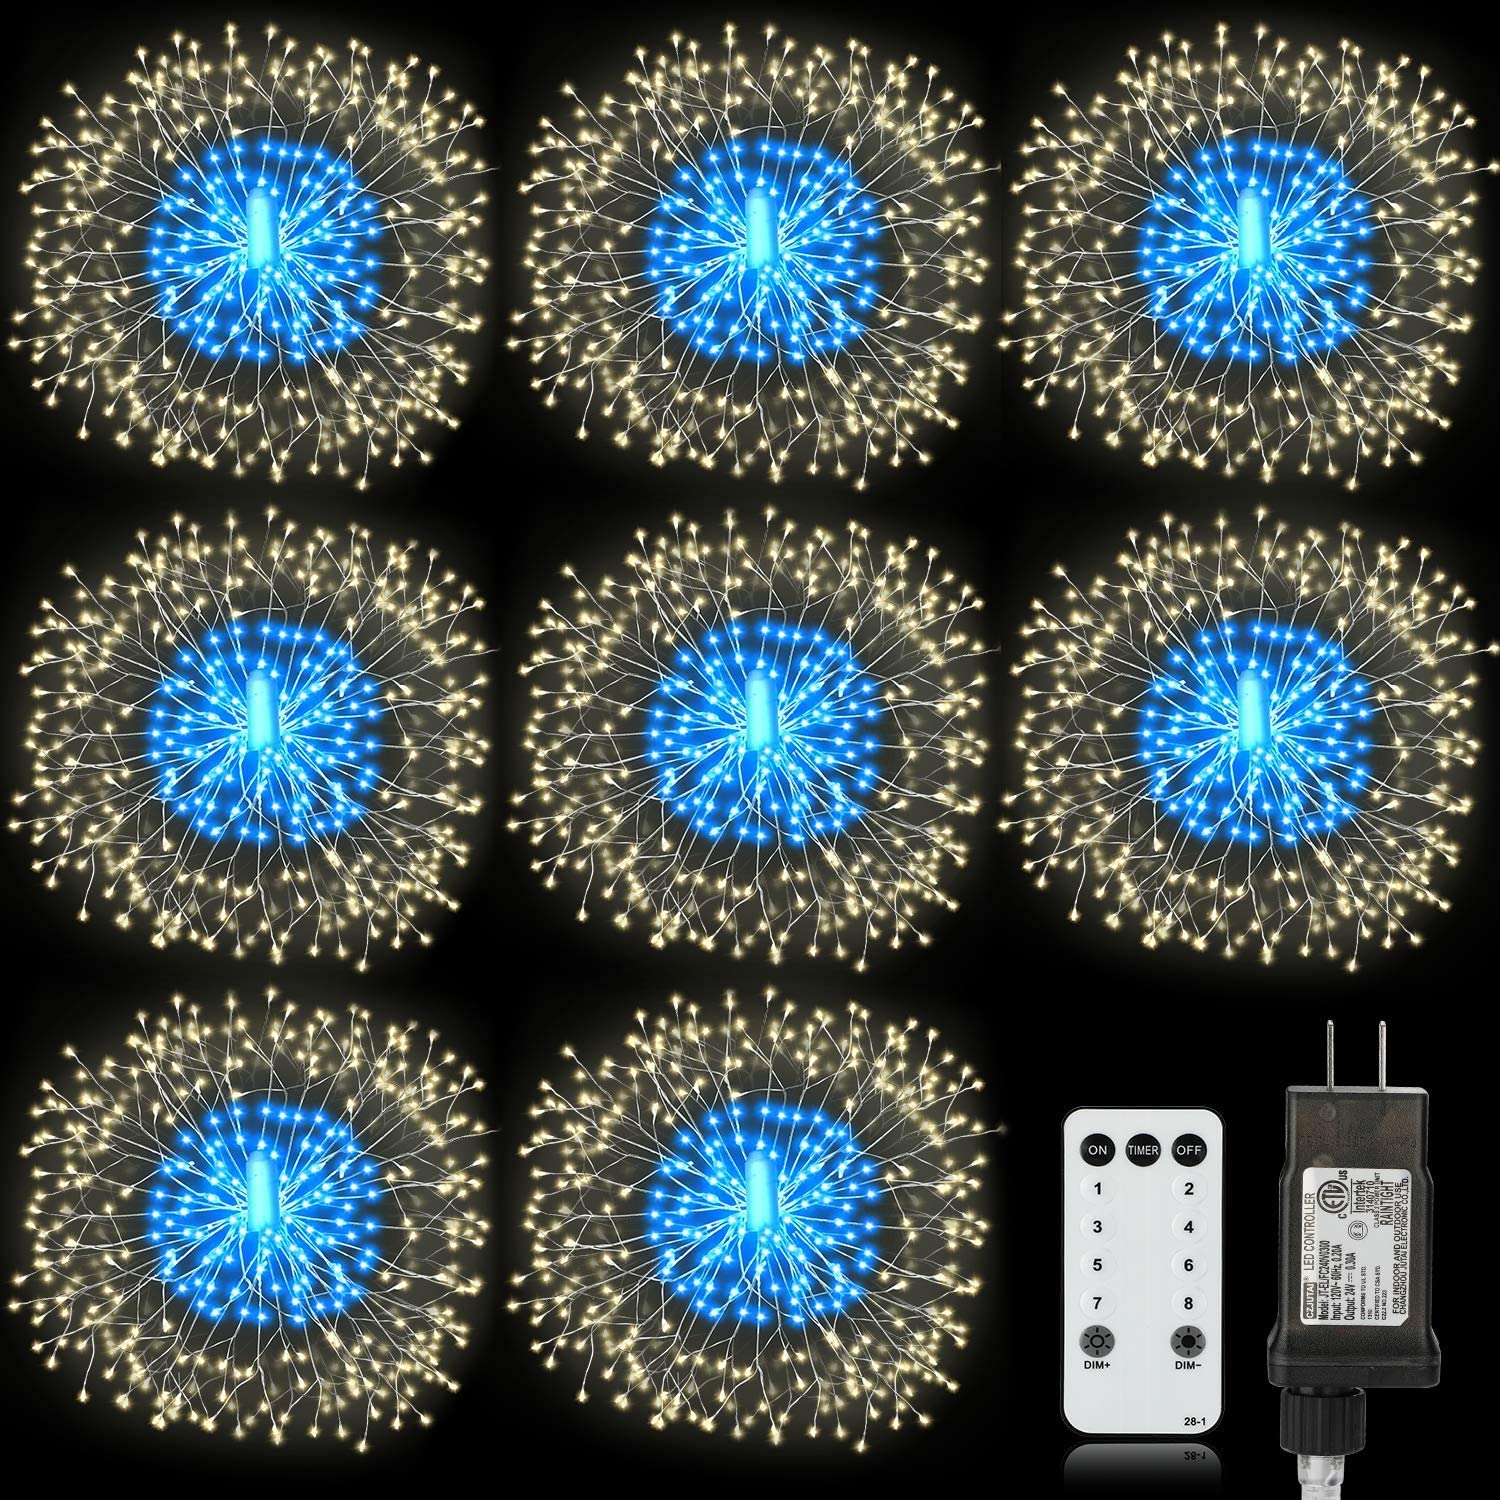 Homesprit Firework Lights 8 Pack 180 Led Copper Wire Starburst Lights with 8 Models, Power Supply Fairy Lights with Remote Control, Waterproof Outdoor Hanging Lights for Decor Garden Party Christmas